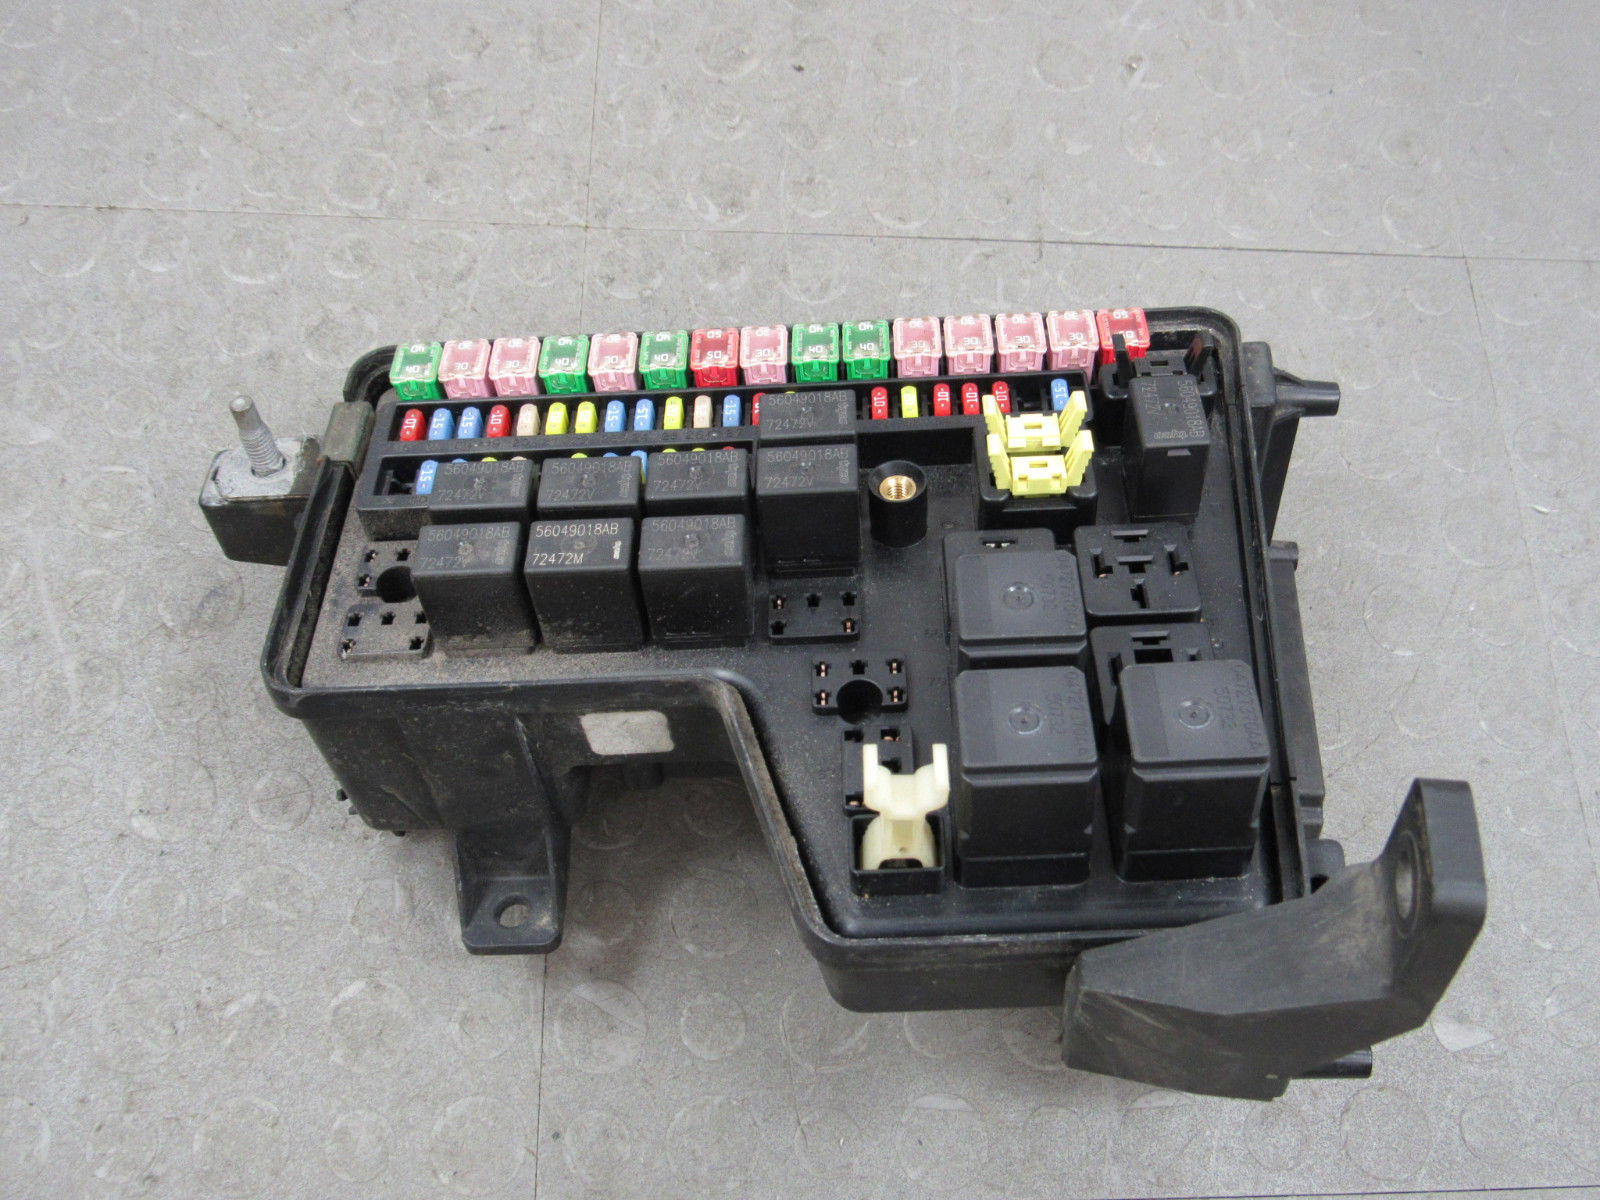 03 Dodge Ram Fuse Box Simple Guide About Wiring Diagram 2002 3500 02 Integrated Power Distribution Module Rh Importapart Com